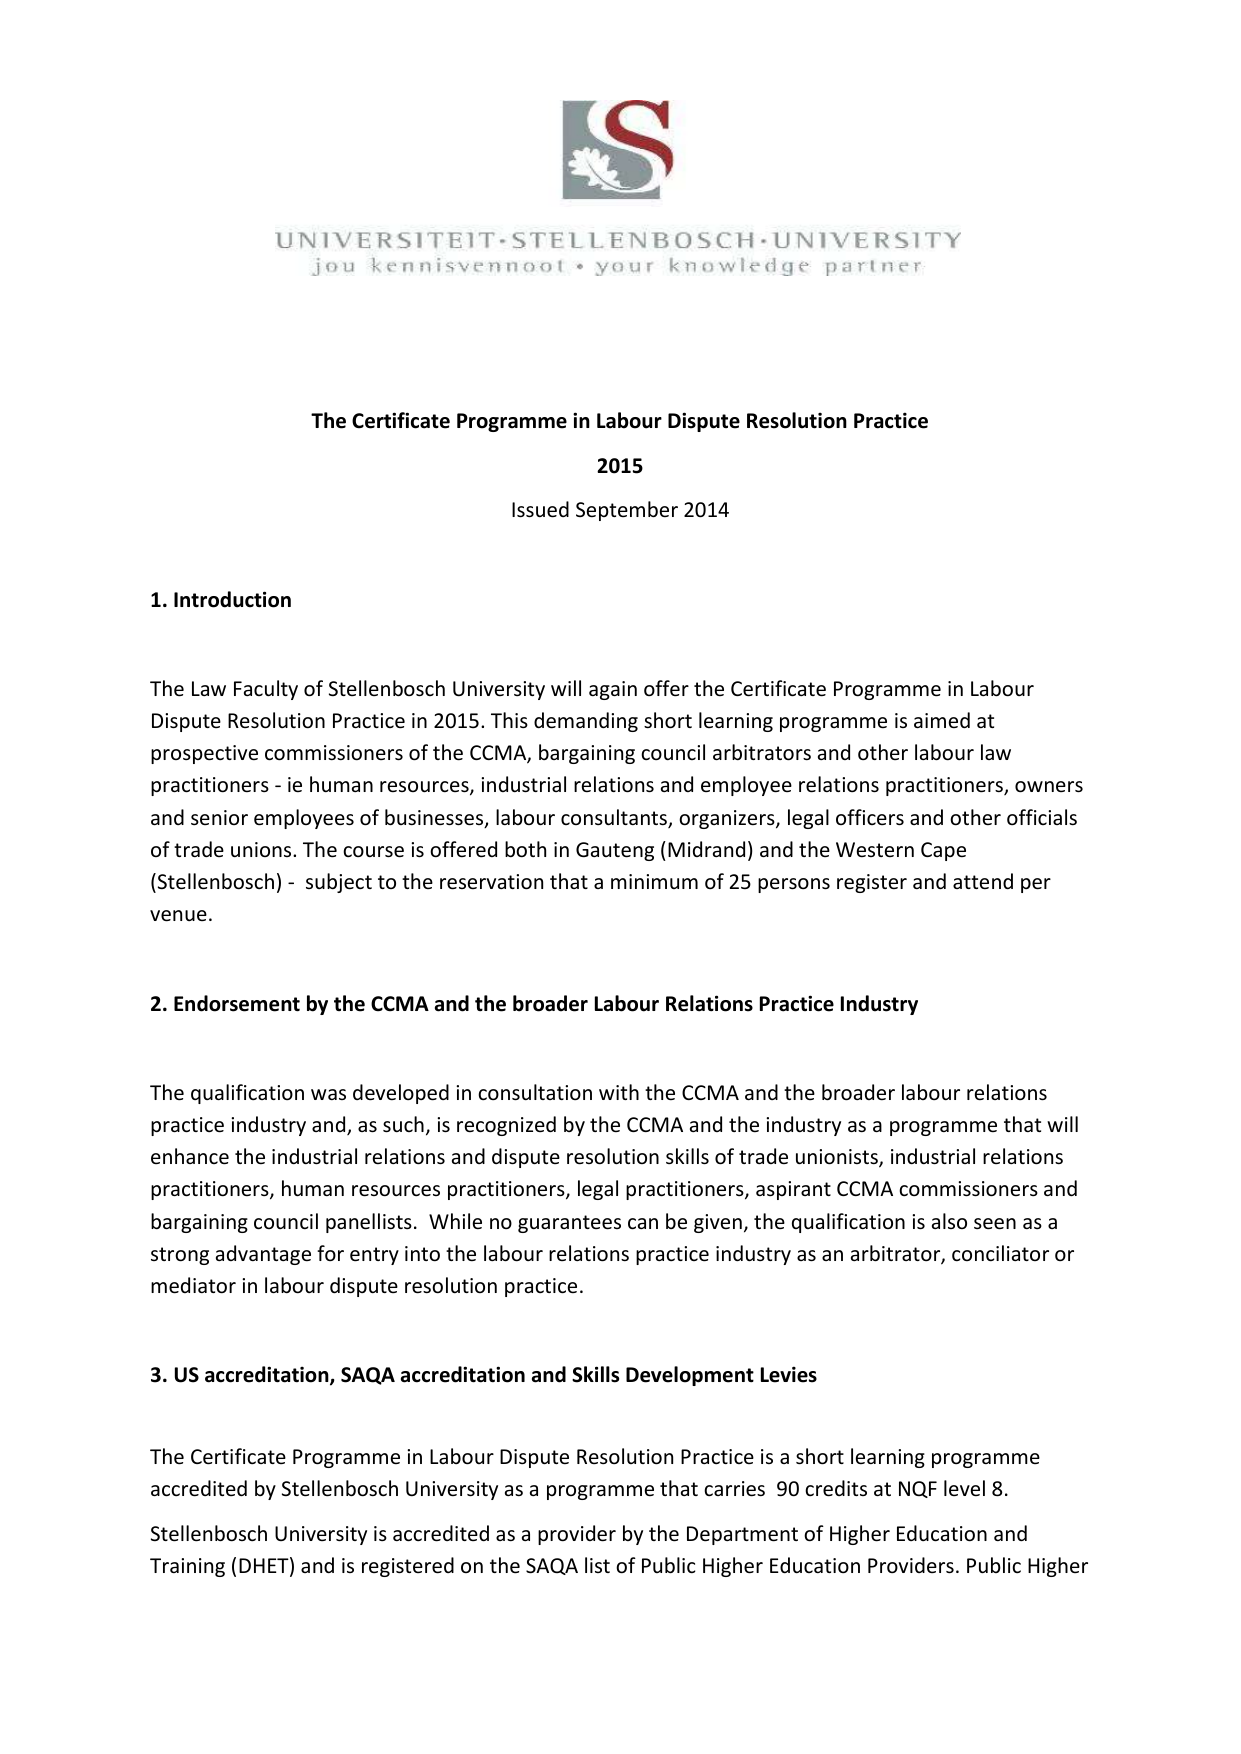 The Certificate Programme in Labour Dispute Resolution Practice